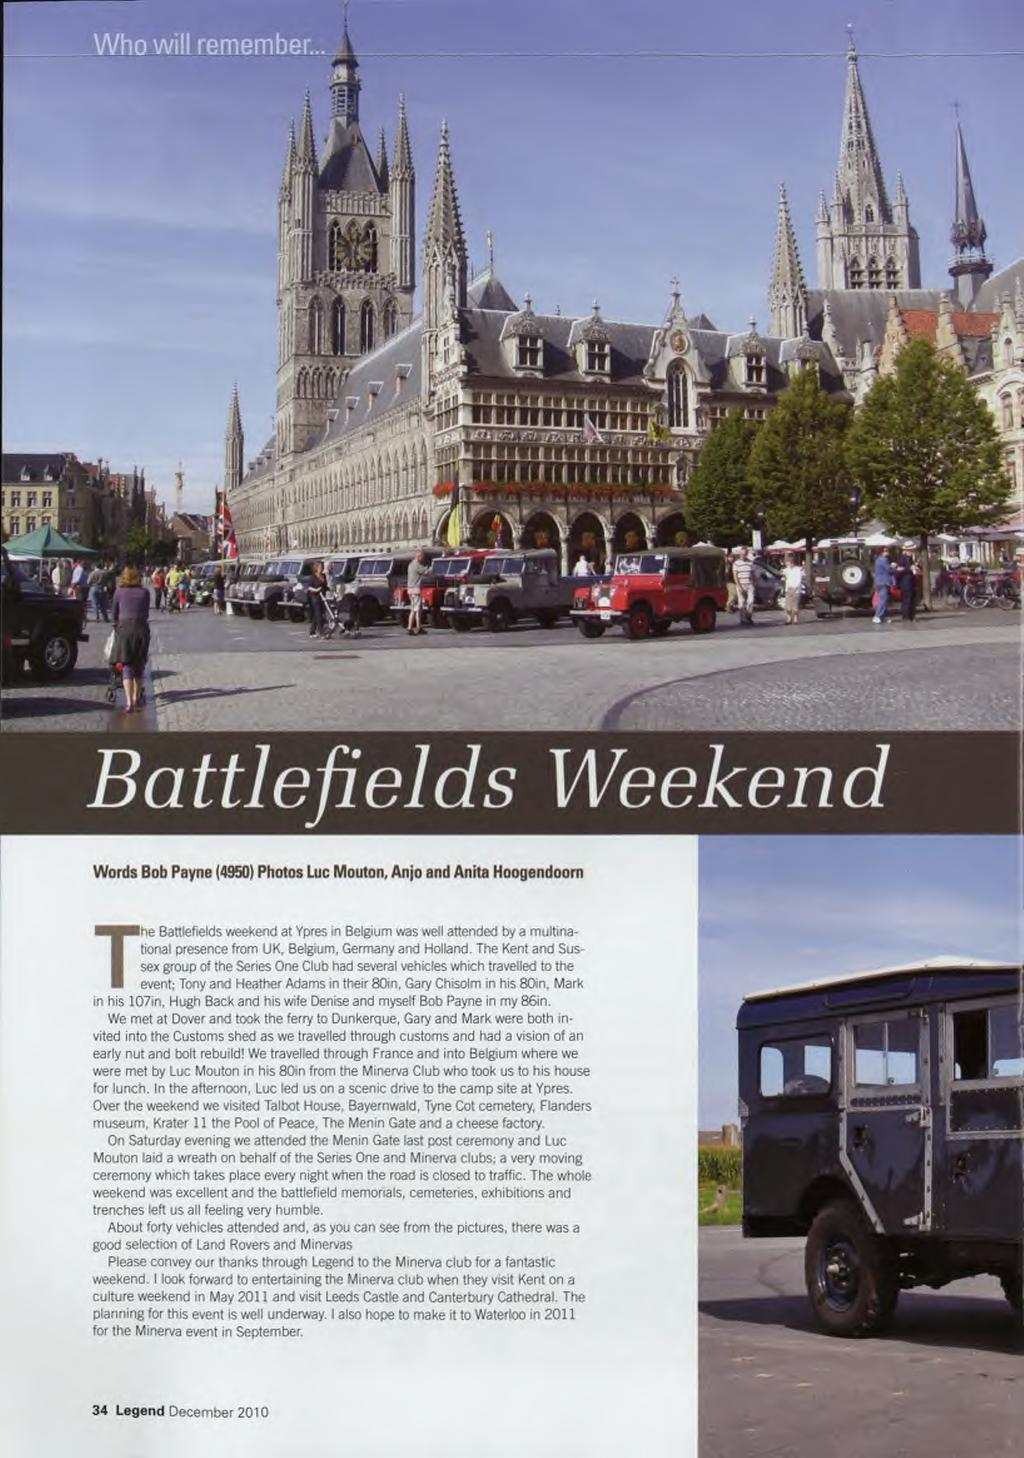 Who will reme Words Bob Payne (4950) Photos Luc Mouton, Anjo and Anita Hoogendoorn The Battlefields weekend at Ypres in Belgium was well attended by a multinational presence from UK, Belgium, Germany